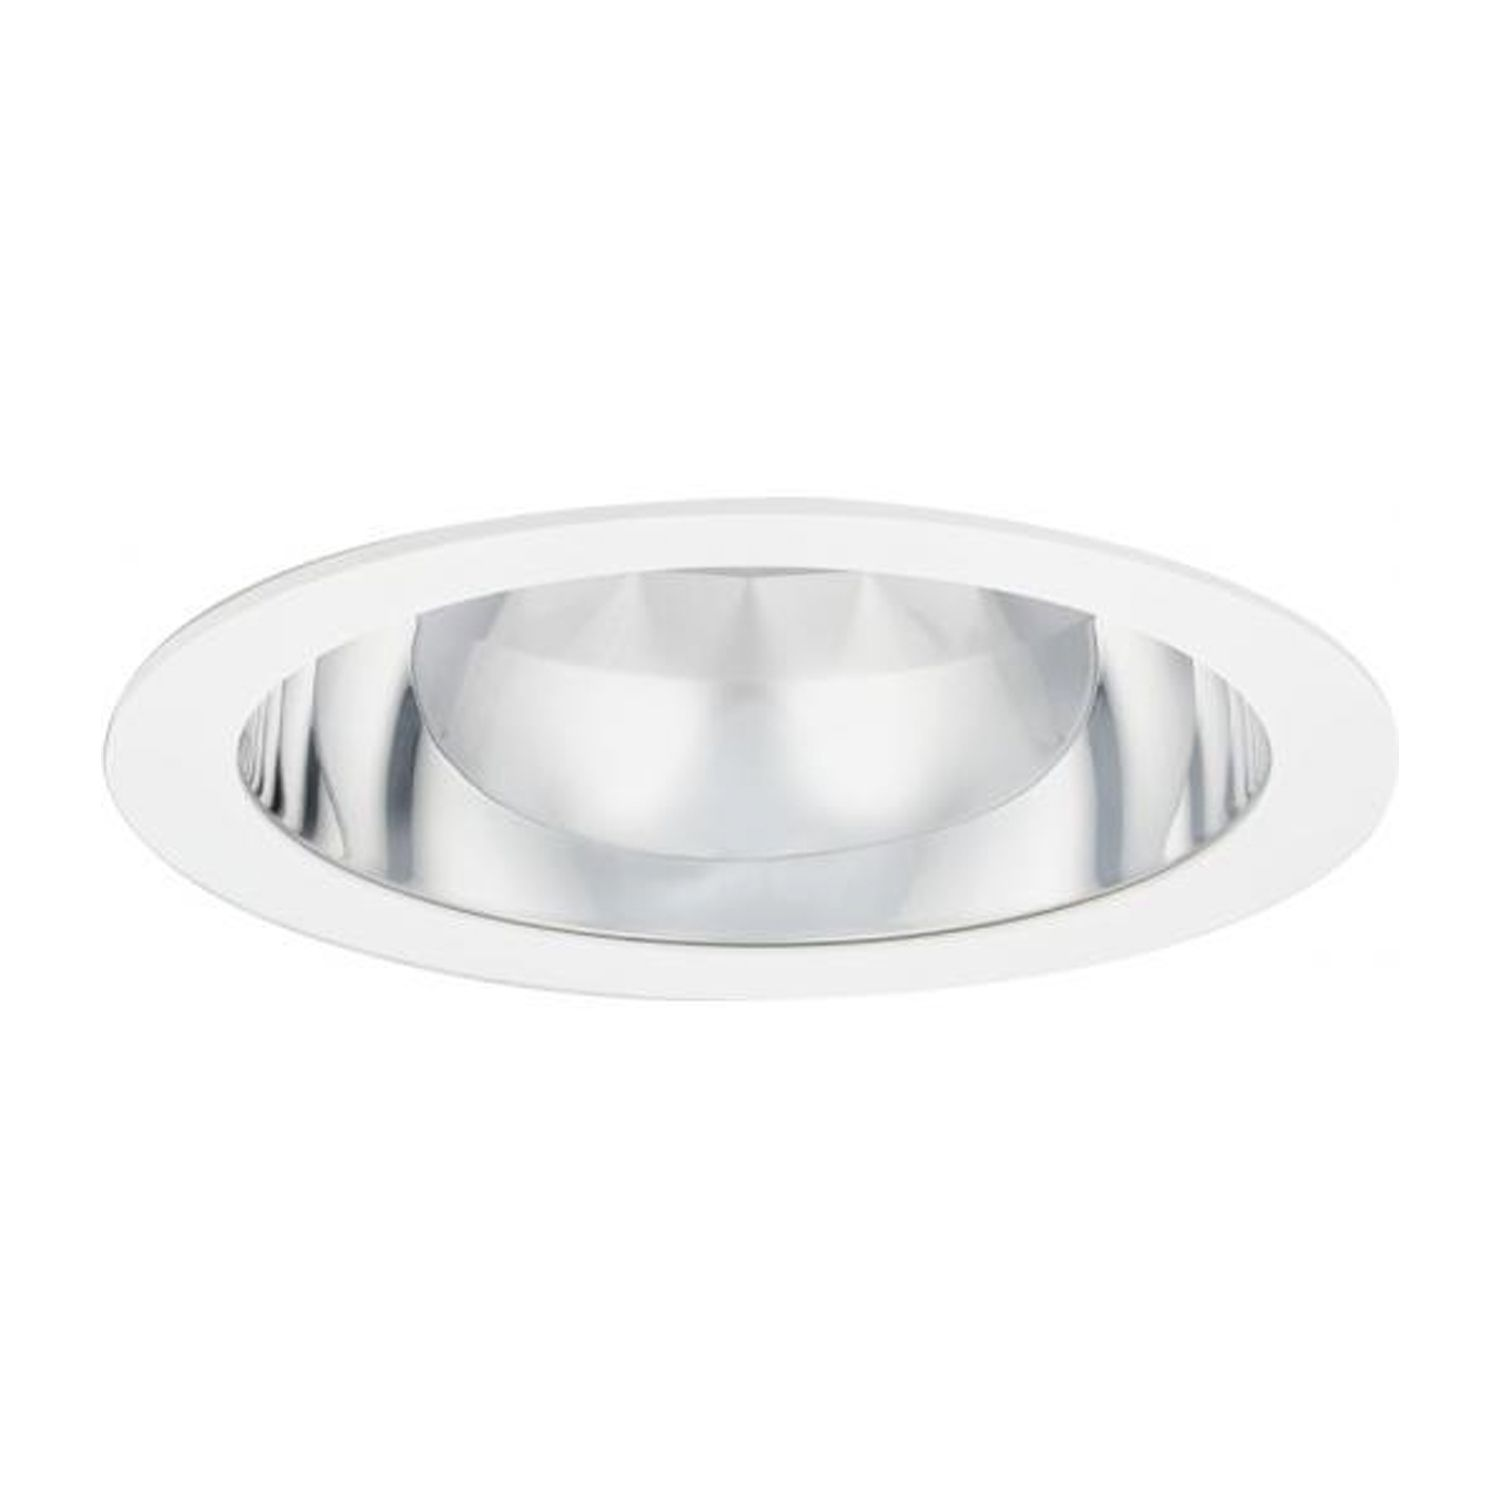 Philips GreenSpace2 DN472B 4000K 2000lm LED20S PSE-E C PCC WH | Dali Dimmable